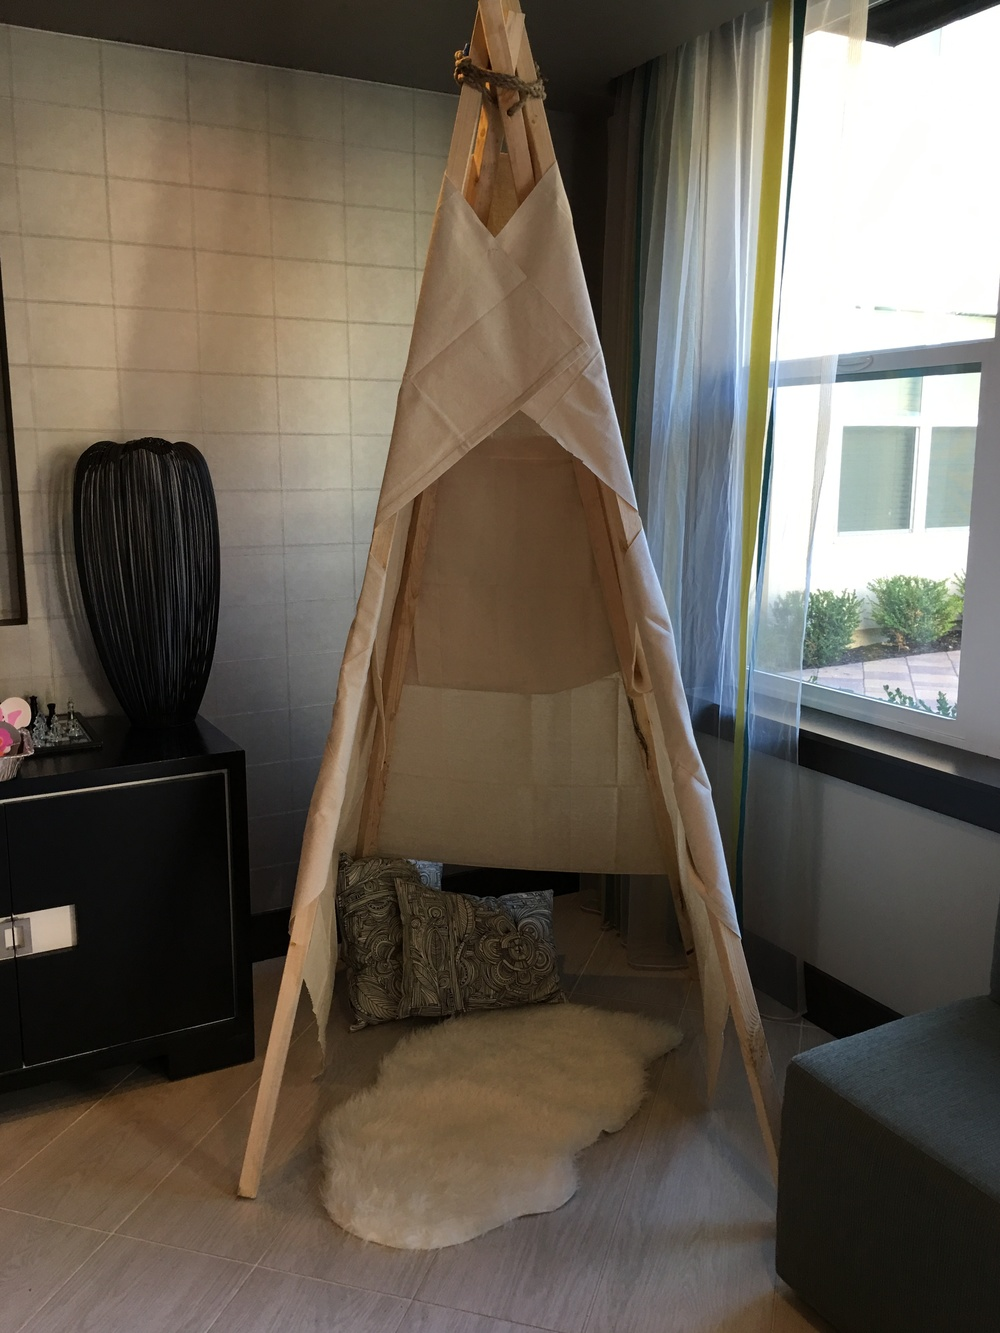 Thanks to LJ for constructing this teepee! he built this teepee from wooden dowels, canvas, and rope.